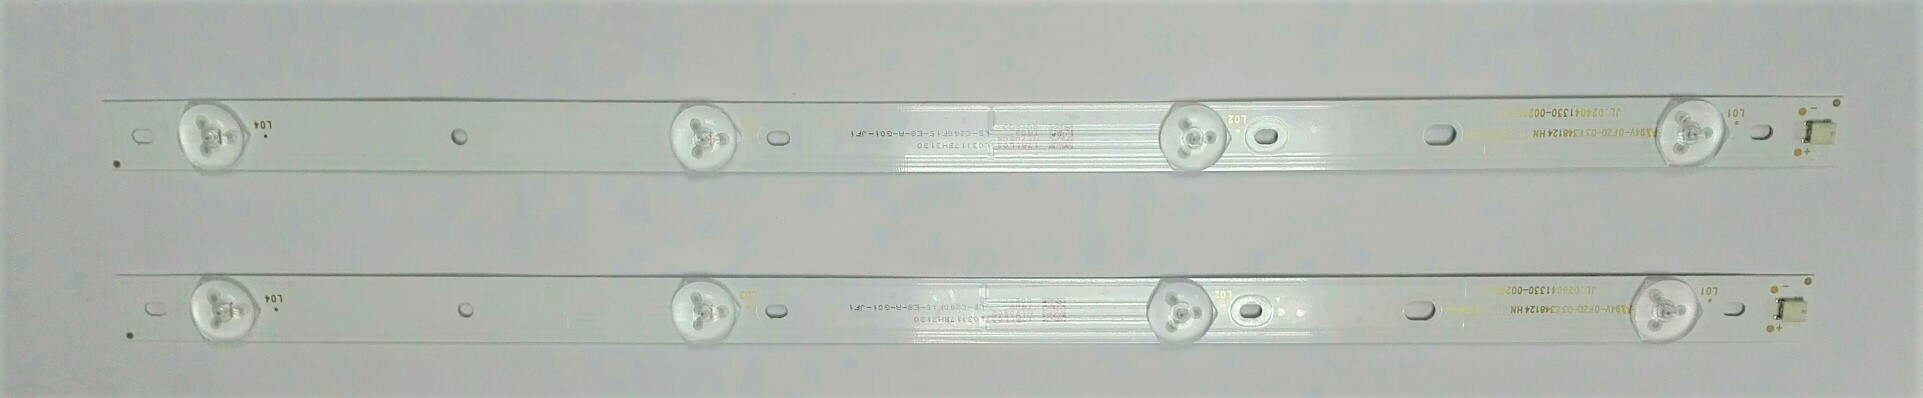 UNITED LED BAR C240F15-E7-A(G01)- USATE -